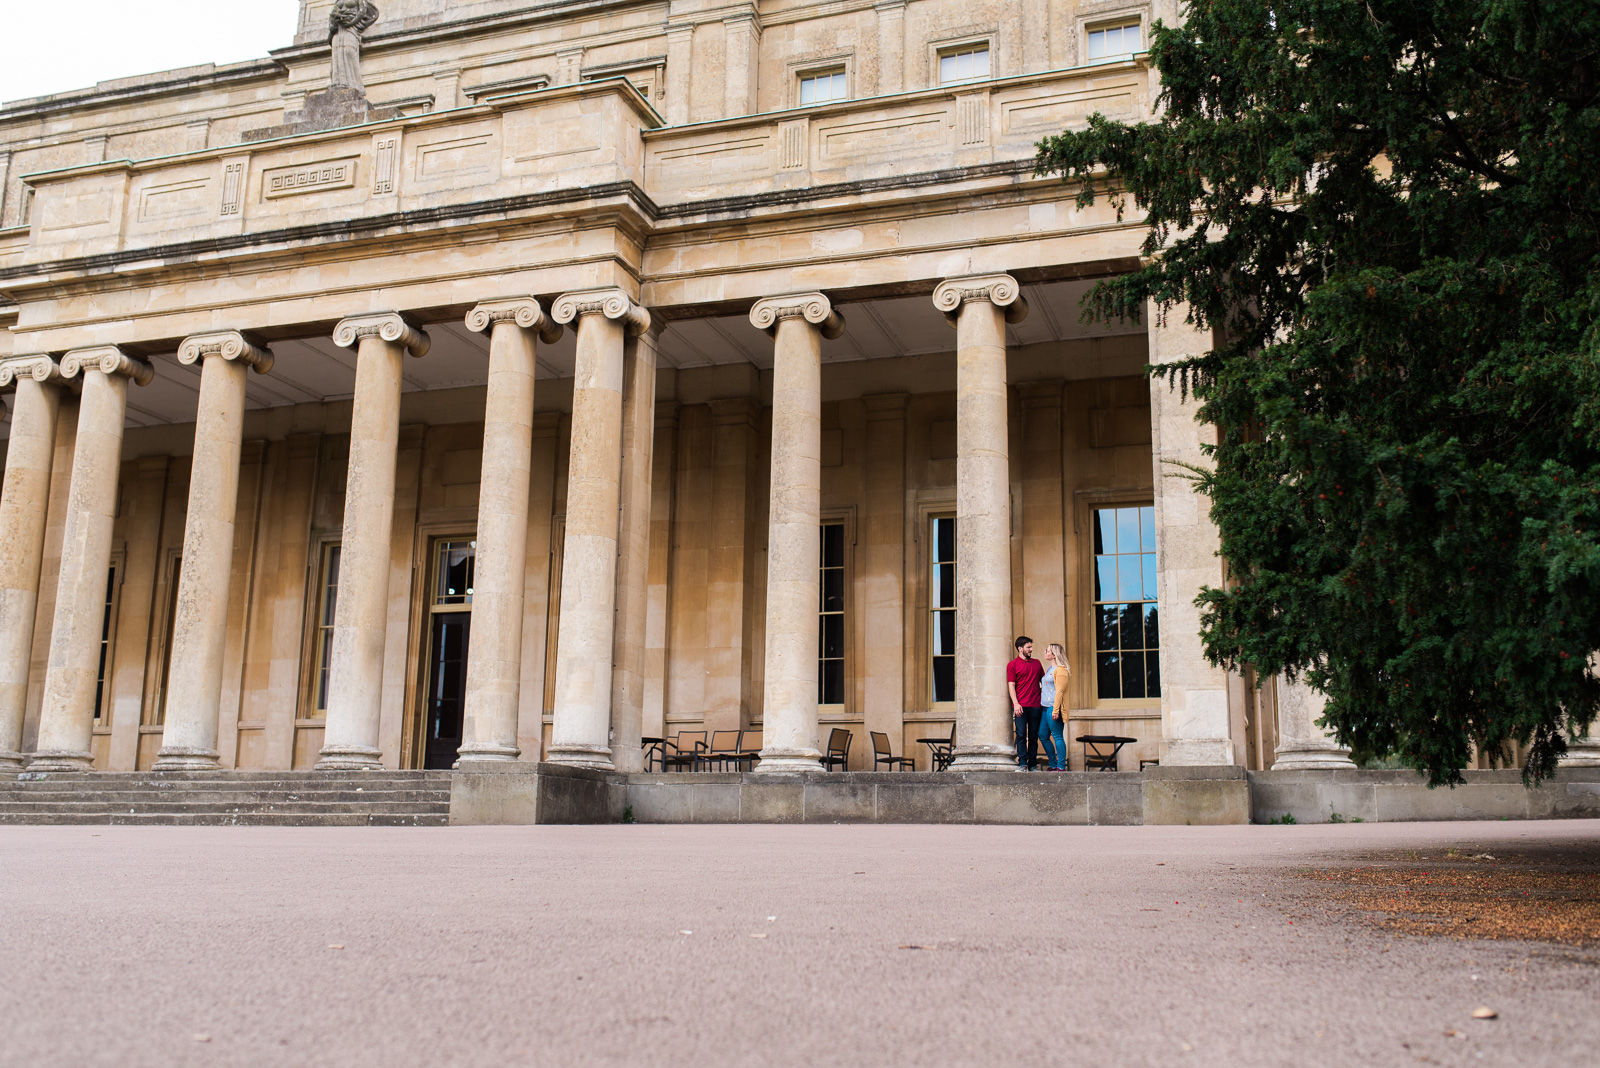 Engagement shoot at Pittville Pump Rooms - Cotswolds Wedding Photographer